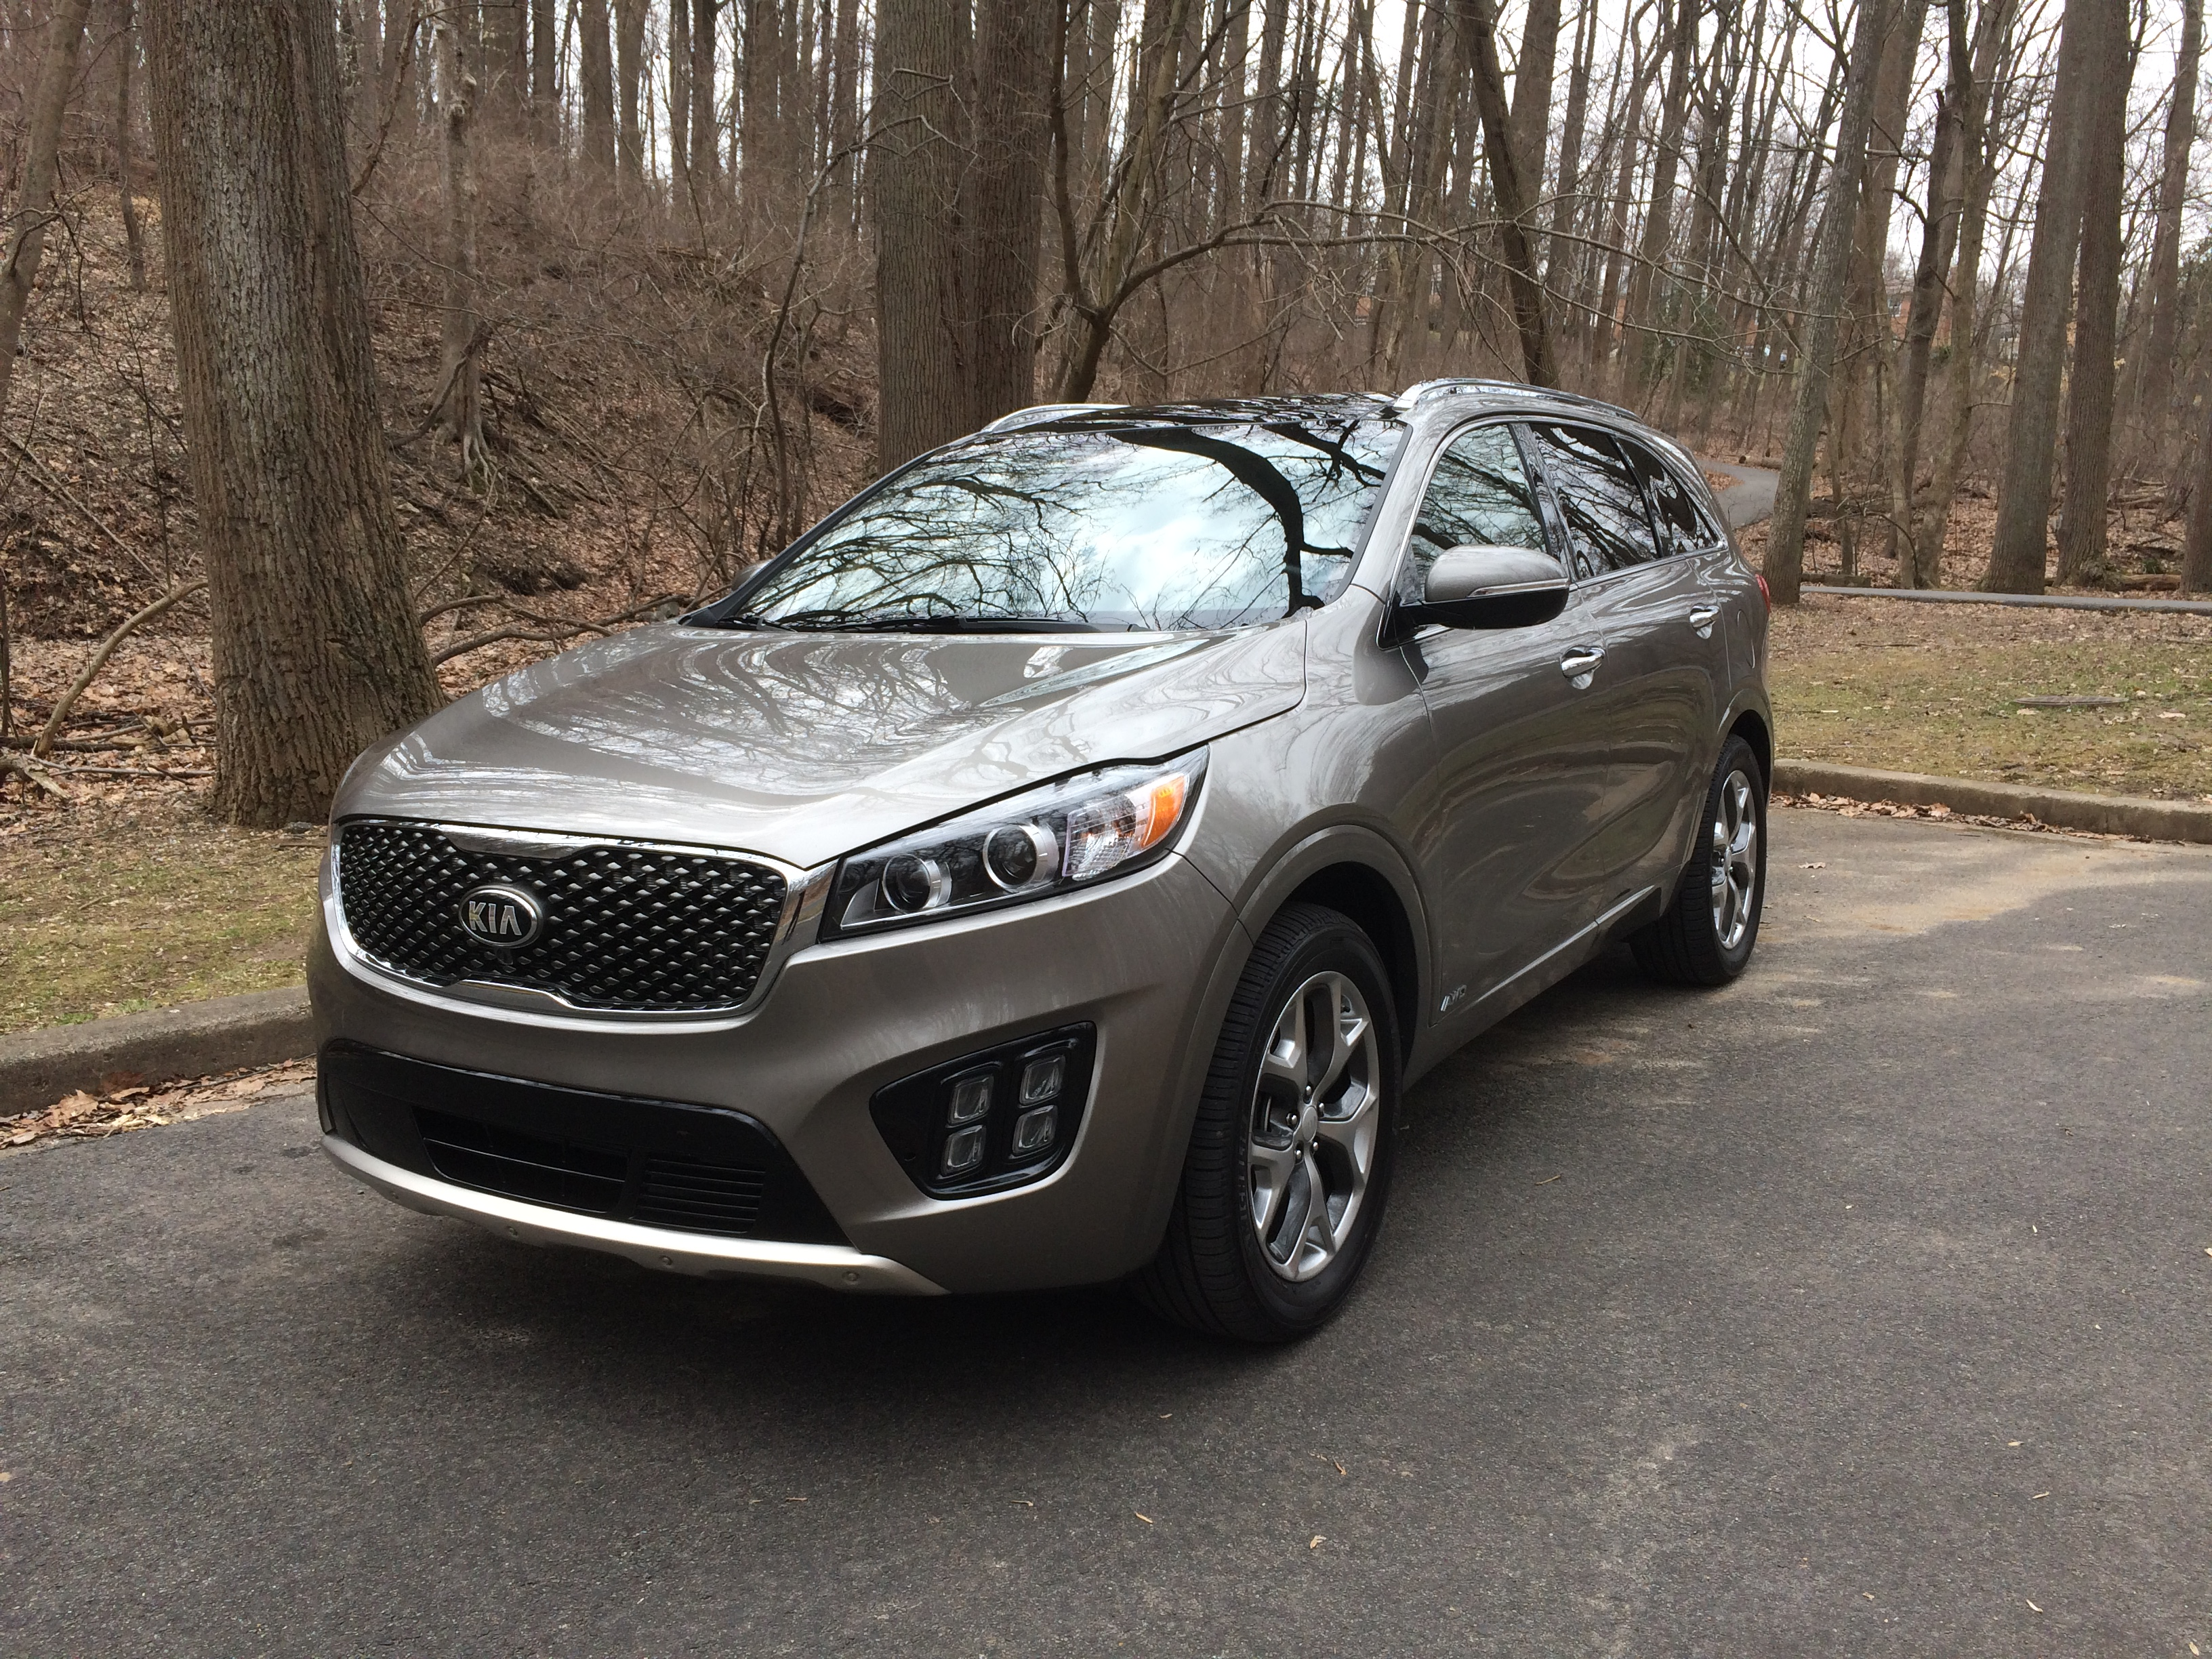 The 2016 Kia Sorento grows and moves more upscale, for a price